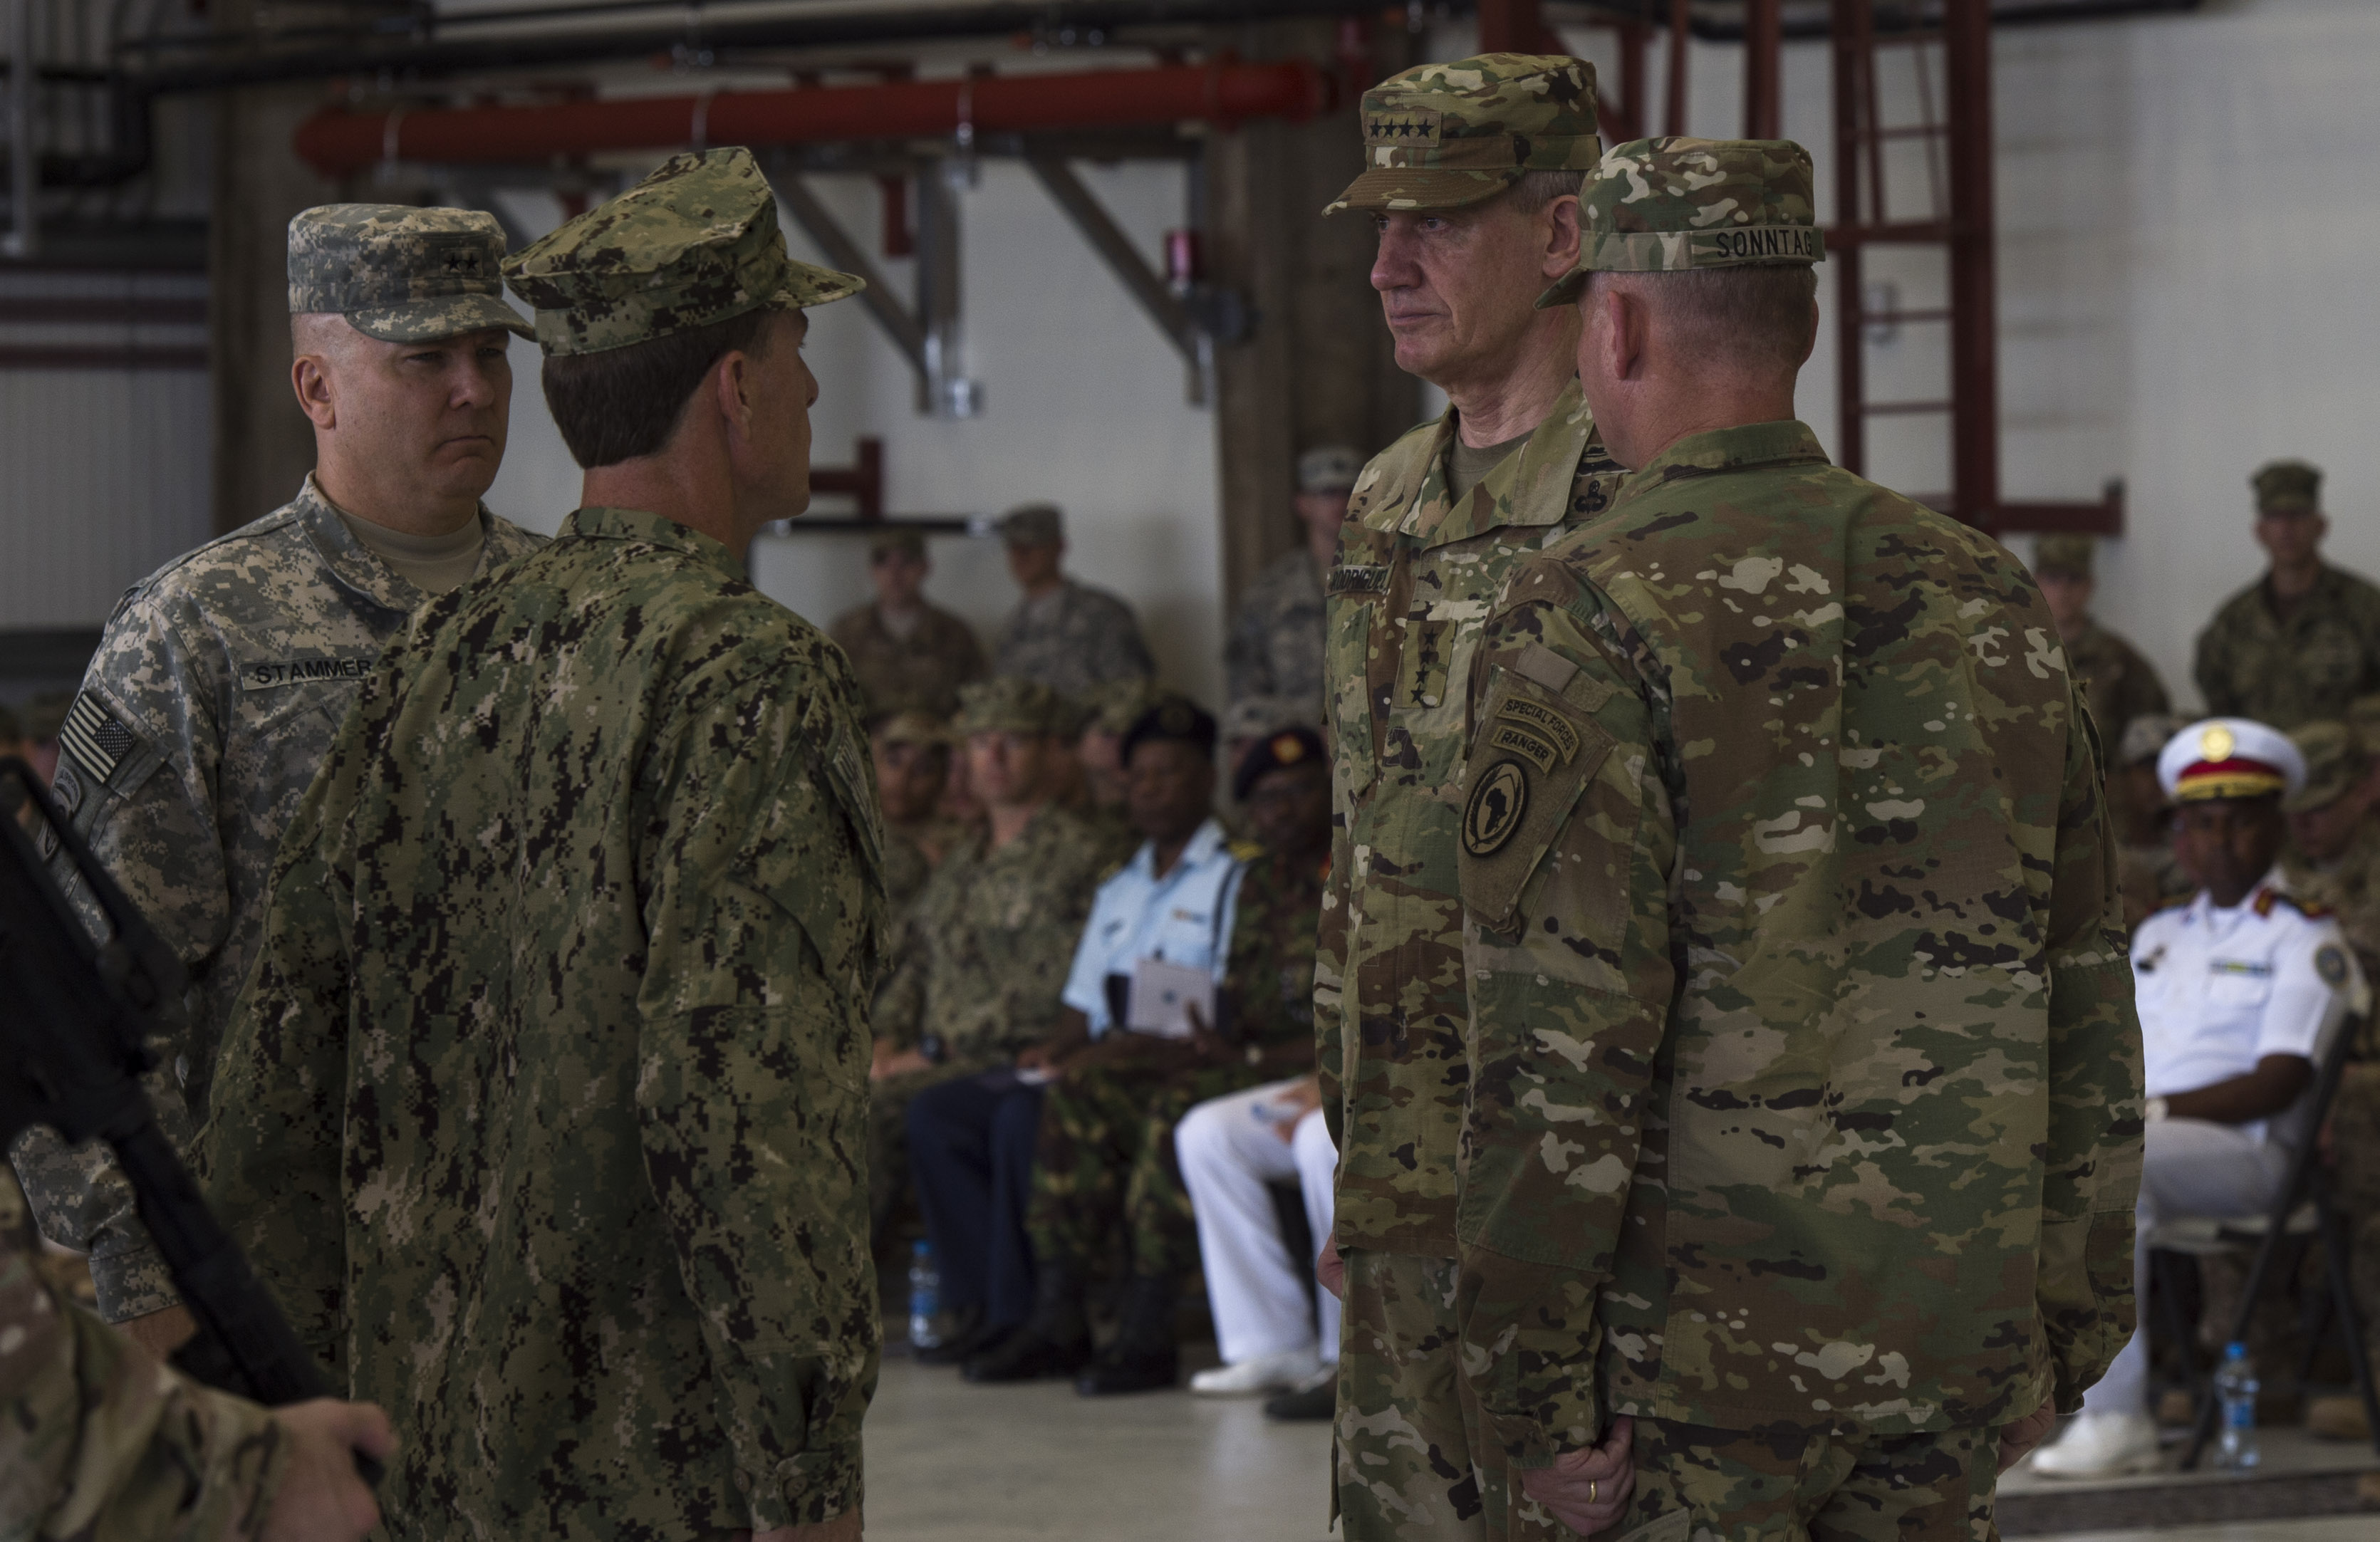 Combined Joint Task Force-Horn of Africa's senior leadership prepare to transfer command and responsibility of the unit from U.S. Army Maj. Gen. Mark Stammer, CJTF-HOA outgoing commander, to Brig. Gen. Kurt Sonntag during a change of command ceremony April 13, 2016, at Camp Lemonnier, Djibouti. Passing of the flag during a change of command is a military tradition that symbolizes the passing of responsibility from the old commander to the new commander. (U.S. Air Force photo by Staff Sgt. Eric Summers Jr.)